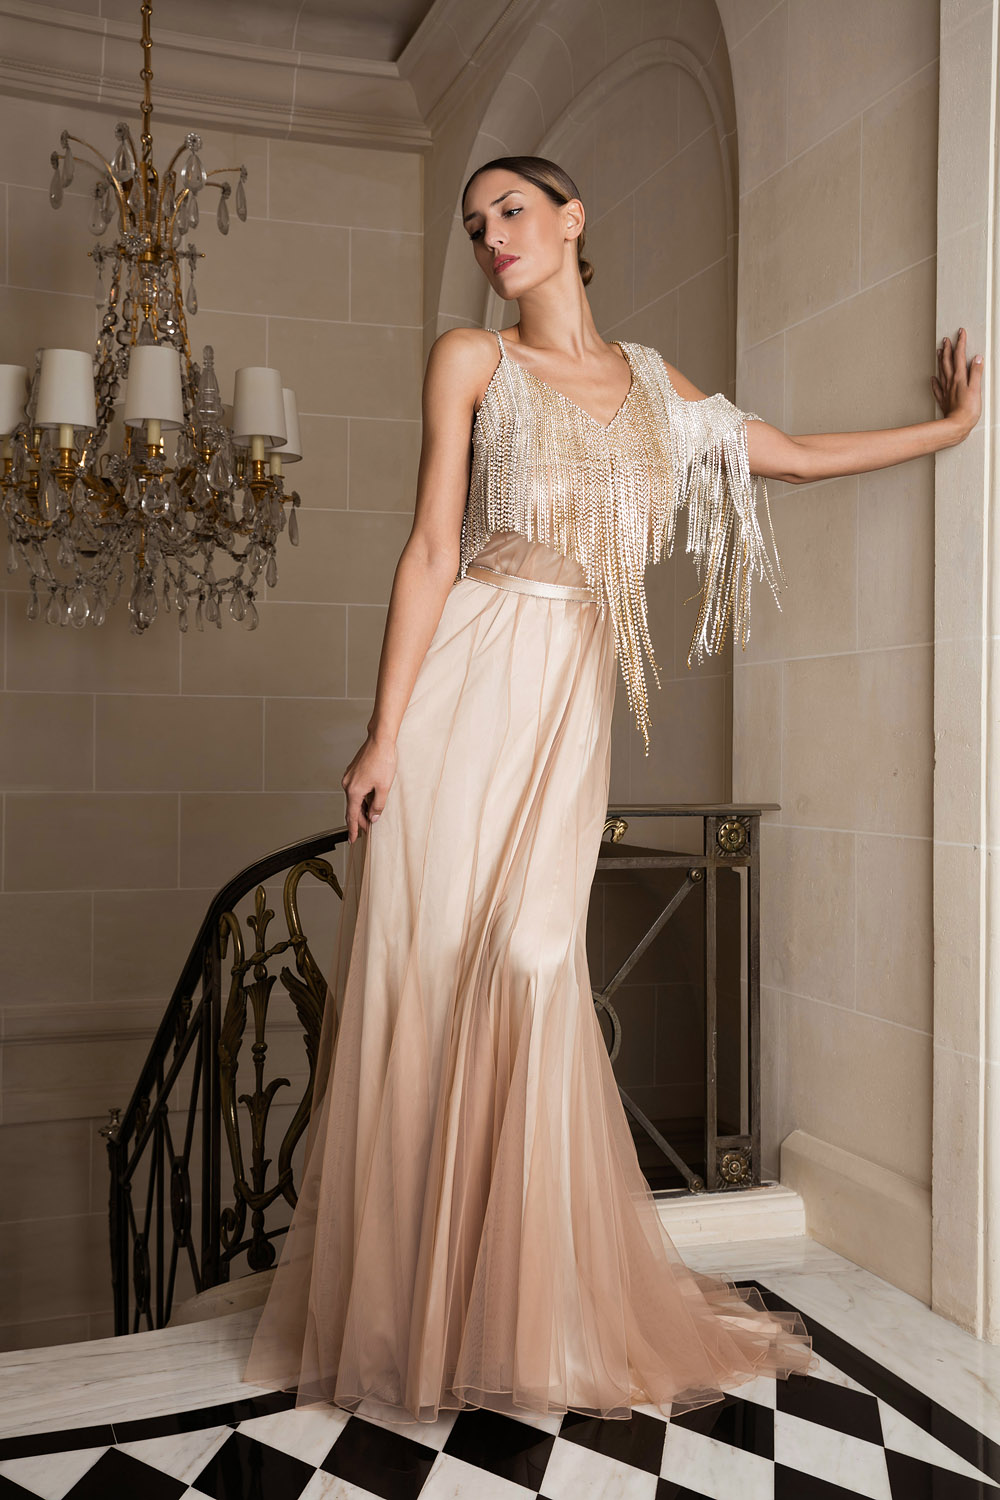 Exclusive ivory gown with an embroidered top